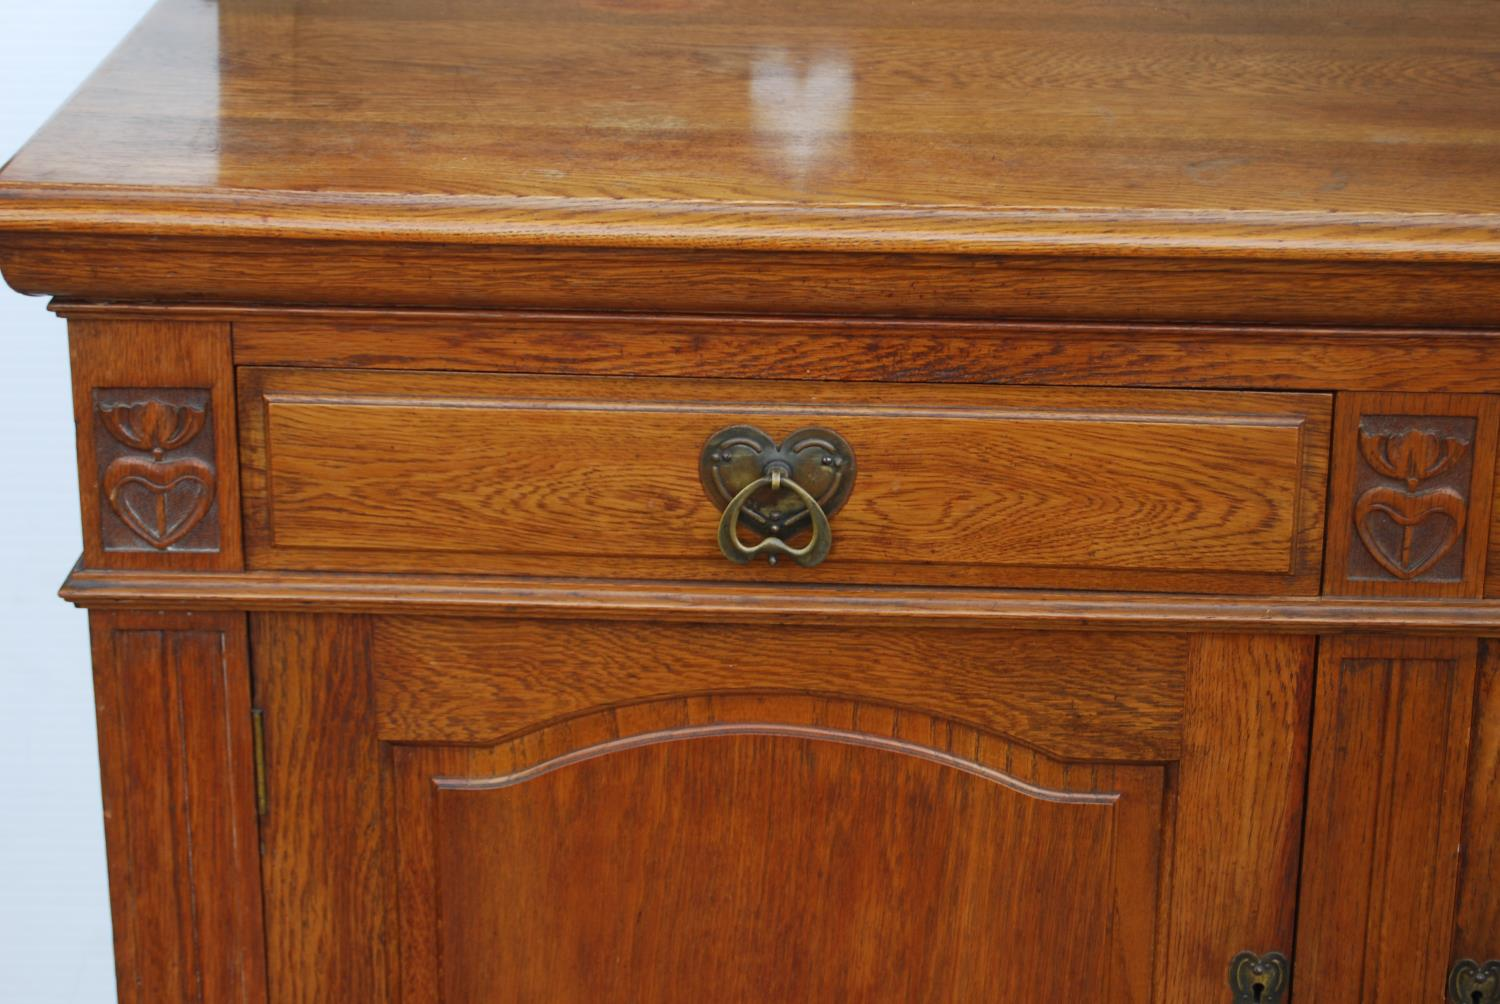 Aesthetic oak sideboard, the back panel with pierced inverted hearts, moulded rectangular top over - Image 2 of 7